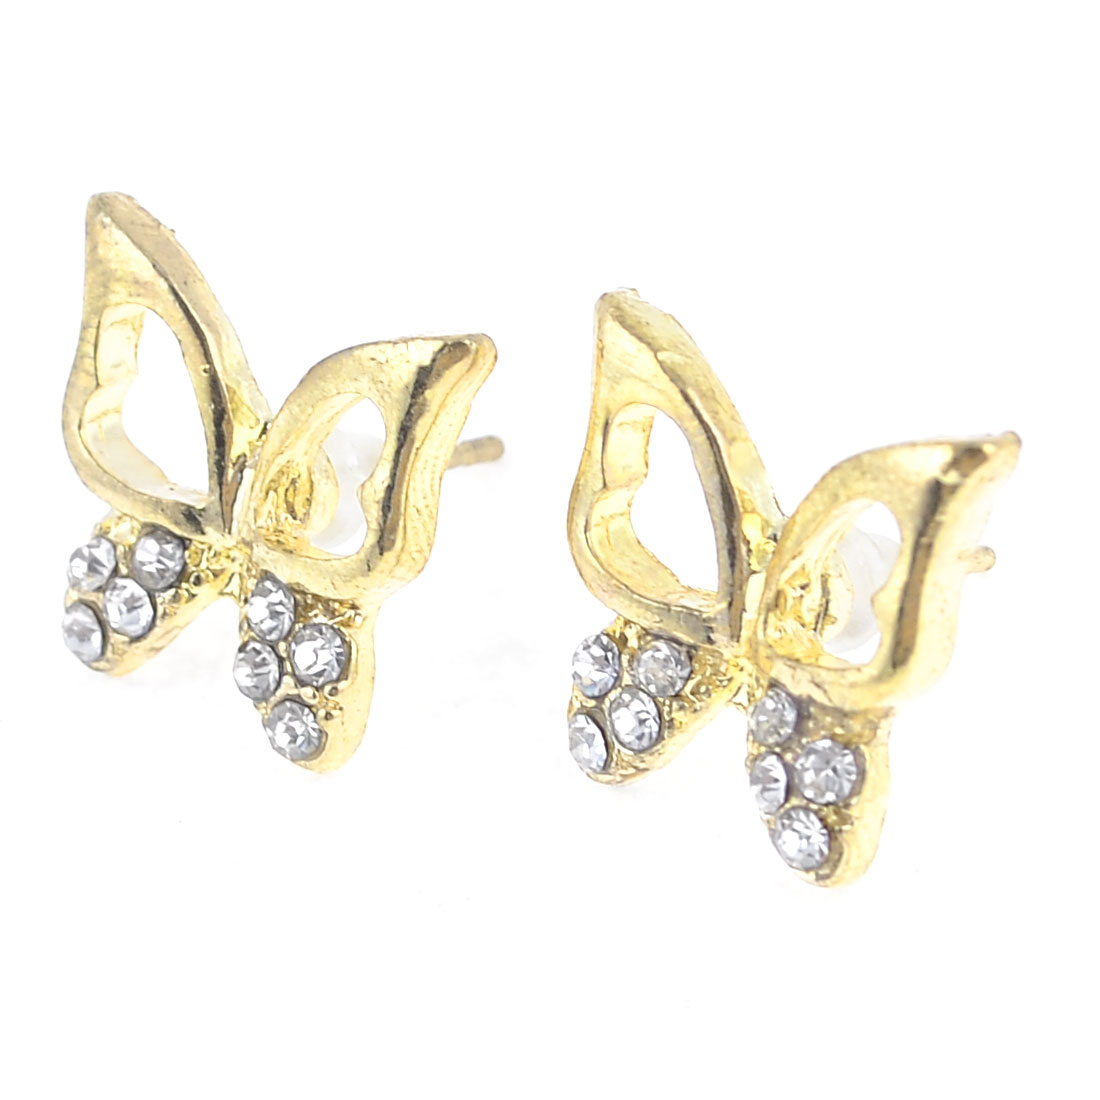 2 Pcs Rhinestone Inlaid Hollow Out Ear Stud Earrings Gold Tone for Women